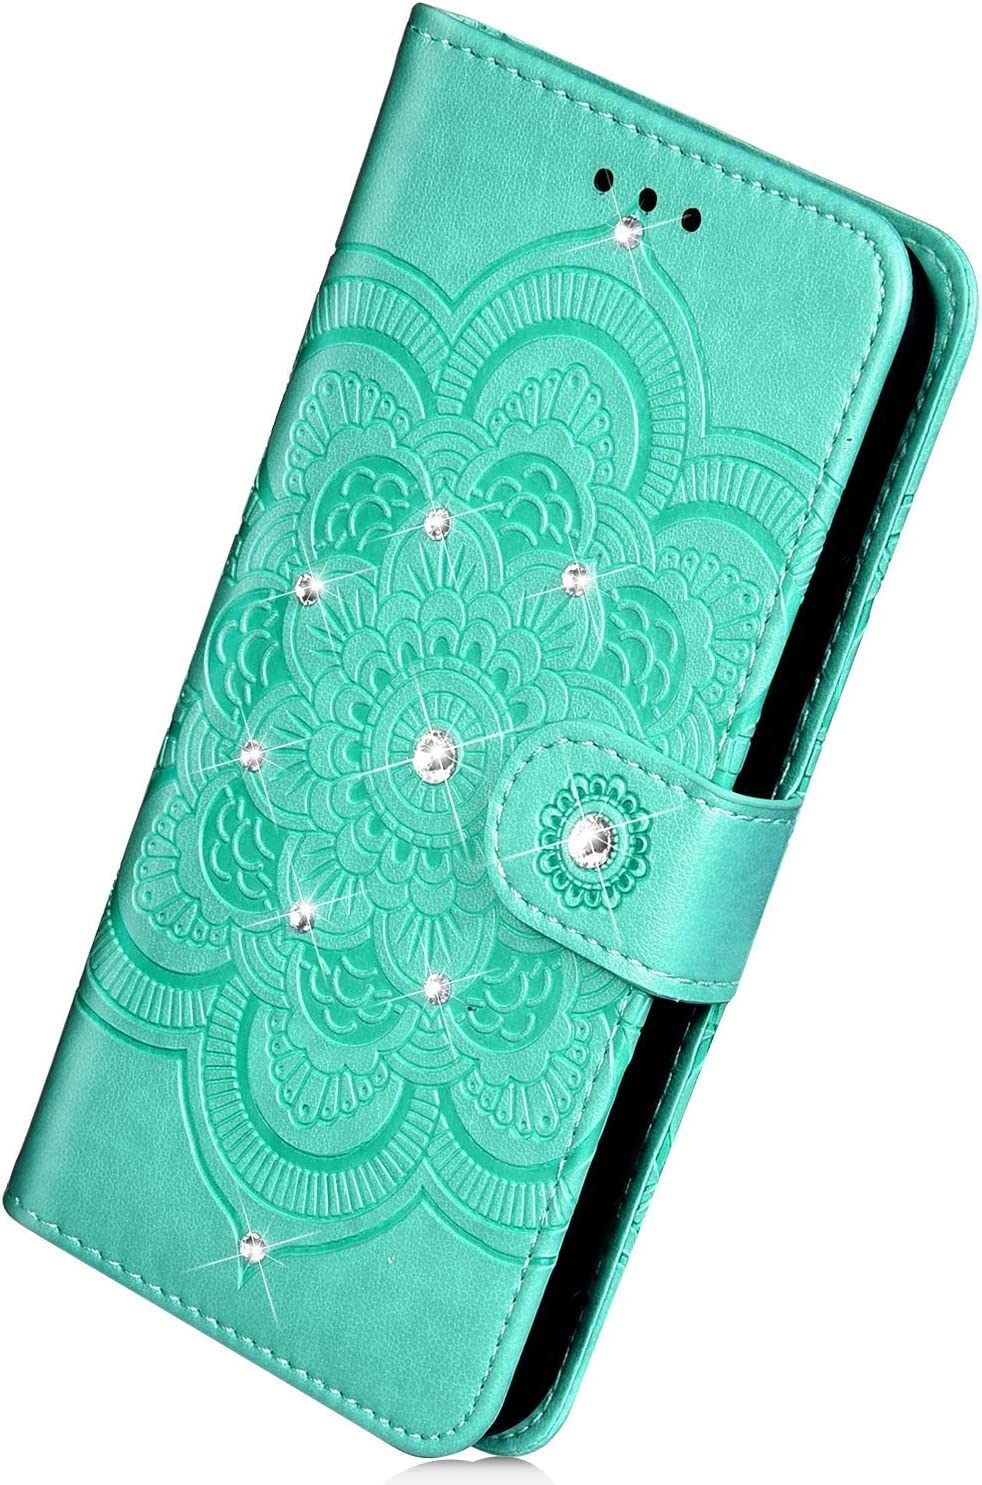 Herbests Compatible with Huawei P20 Lite 2019 Wallet Case Luxury Bling Glitter Diamond Rhinestone Leather Flip Cover 3D Pressed Mandala Flower Protective Case Card Slots Kickstand,Black